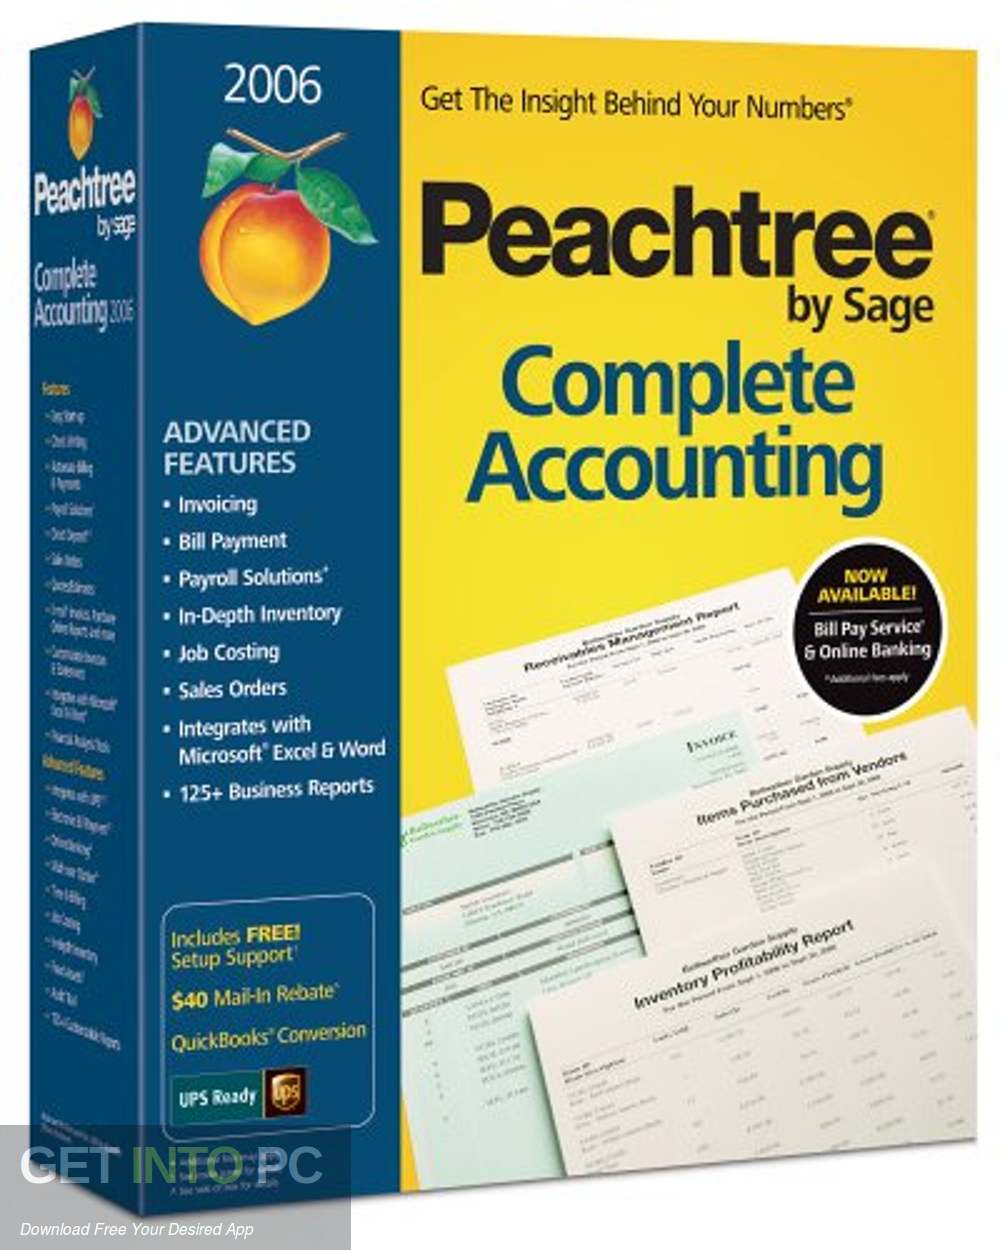 Peachtree Premium Accounting 2006 Download free-GetintoPC.com [19659005] Peachtree Premium Accounting 2006 Free Download-GetintoPC.com